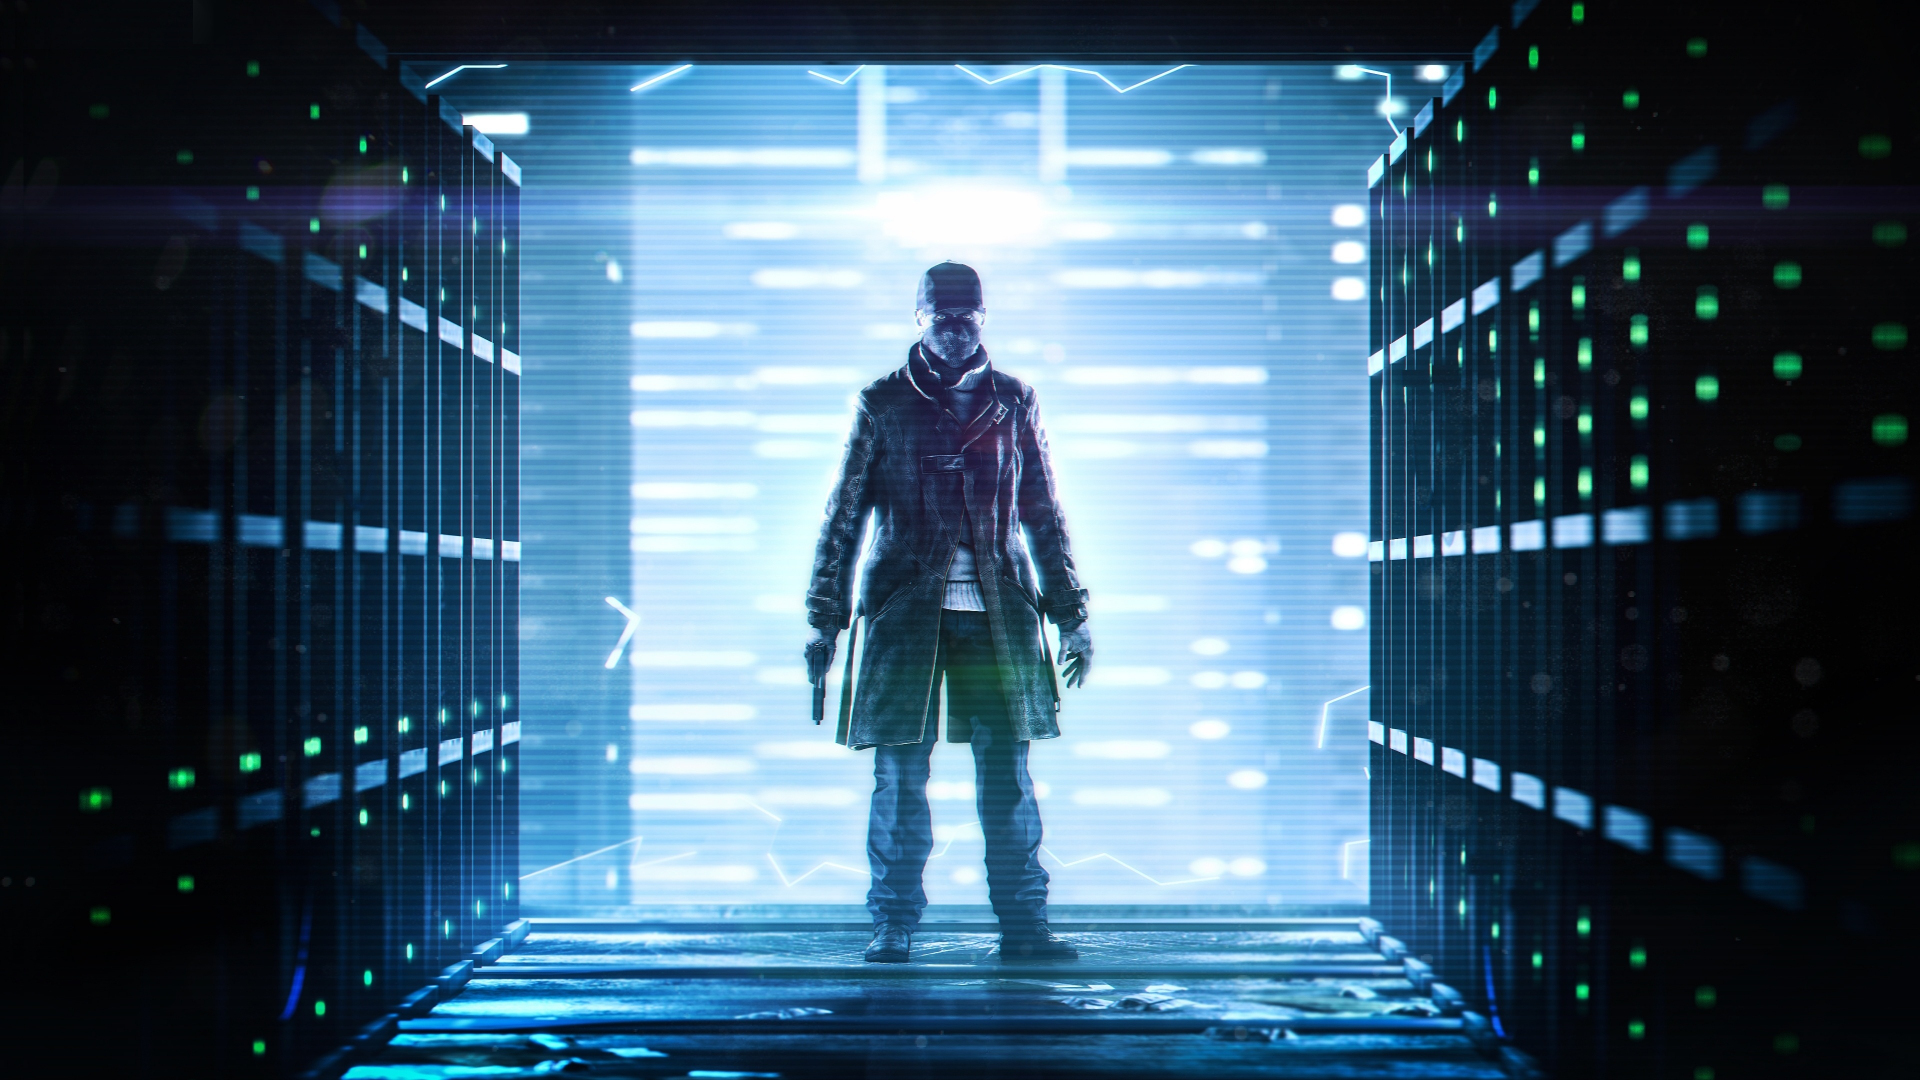 Download 1920x1080 Wallpaper Aiden Pearce Video Game Watch Dogs